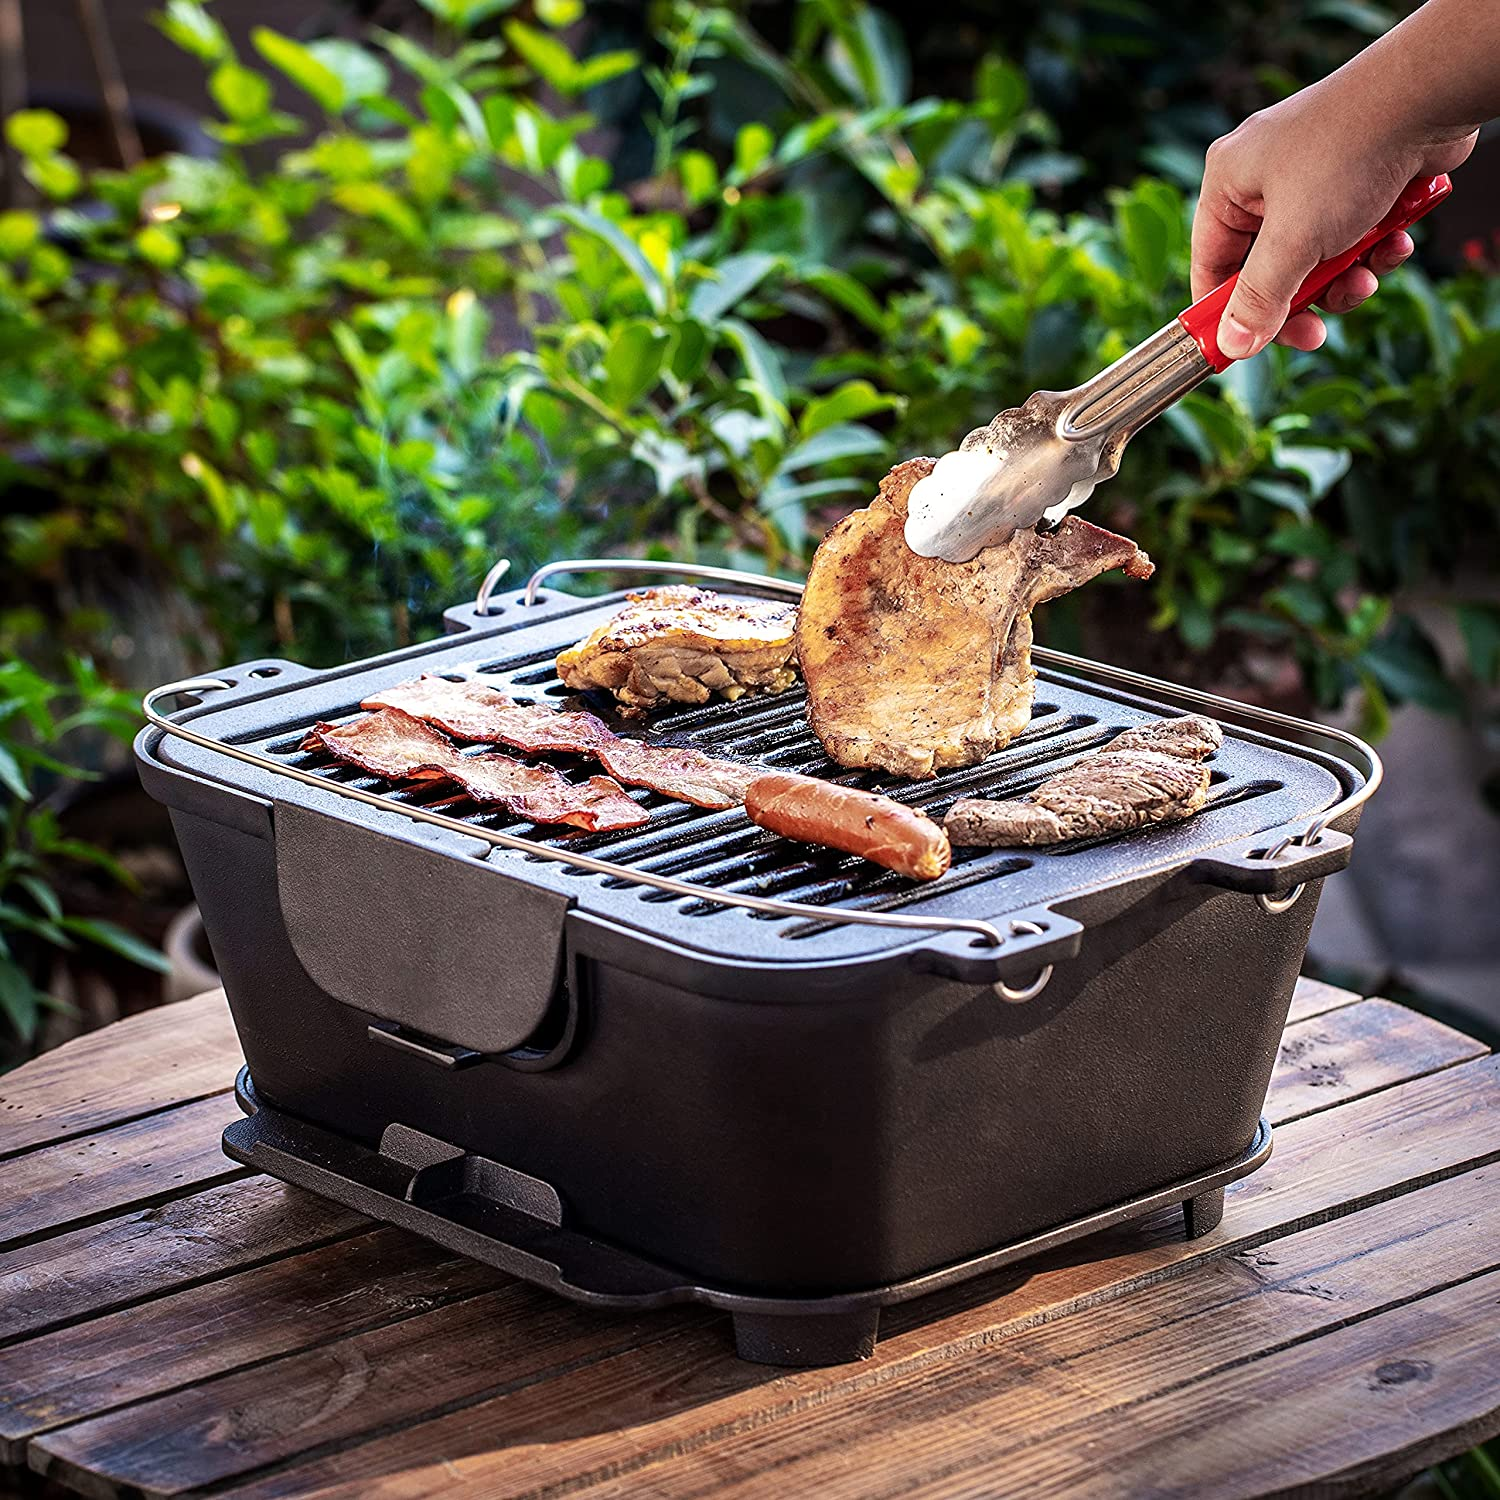 Best for camping and outdoor cooking- Bruntmor Pre-Seasoned Hibachi-Style Grill outside grilling